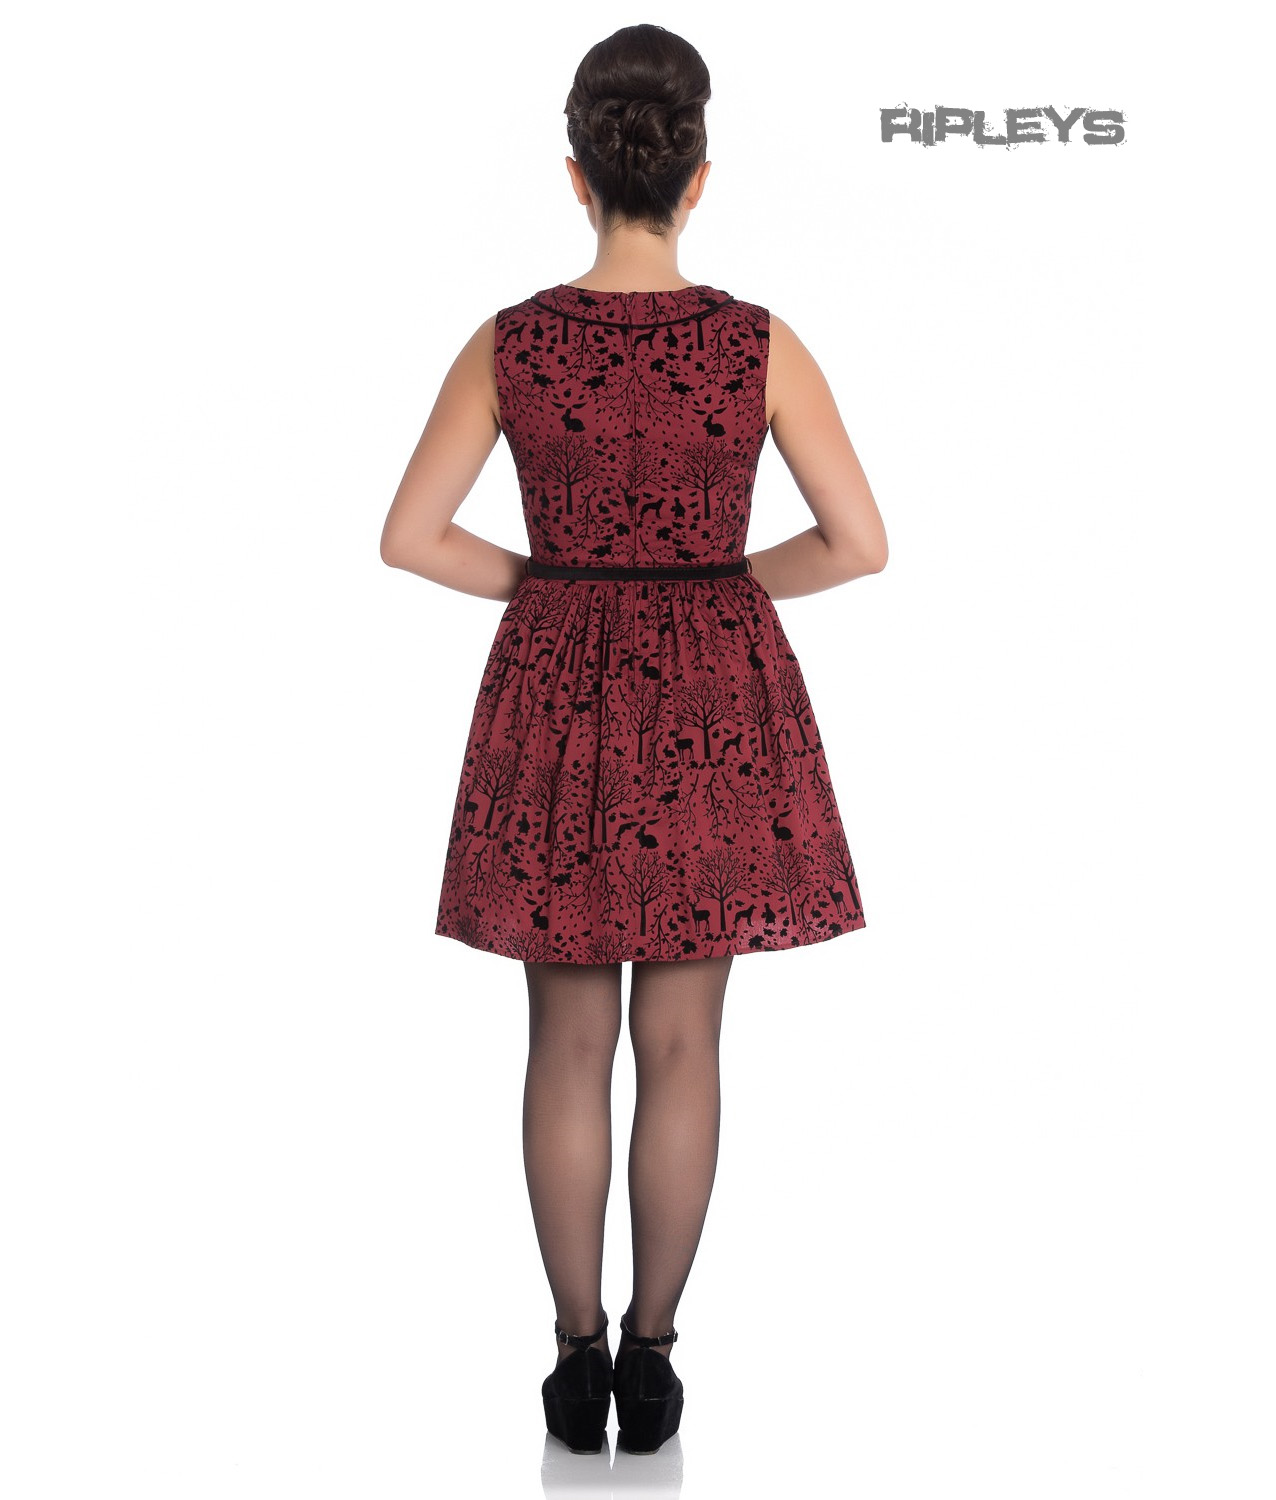 Hell-Bunny-50s-Mini-Skater-Dress-Woodland-Trees-SHERWOOD-Black-Red-All-Sizes thumbnail 32